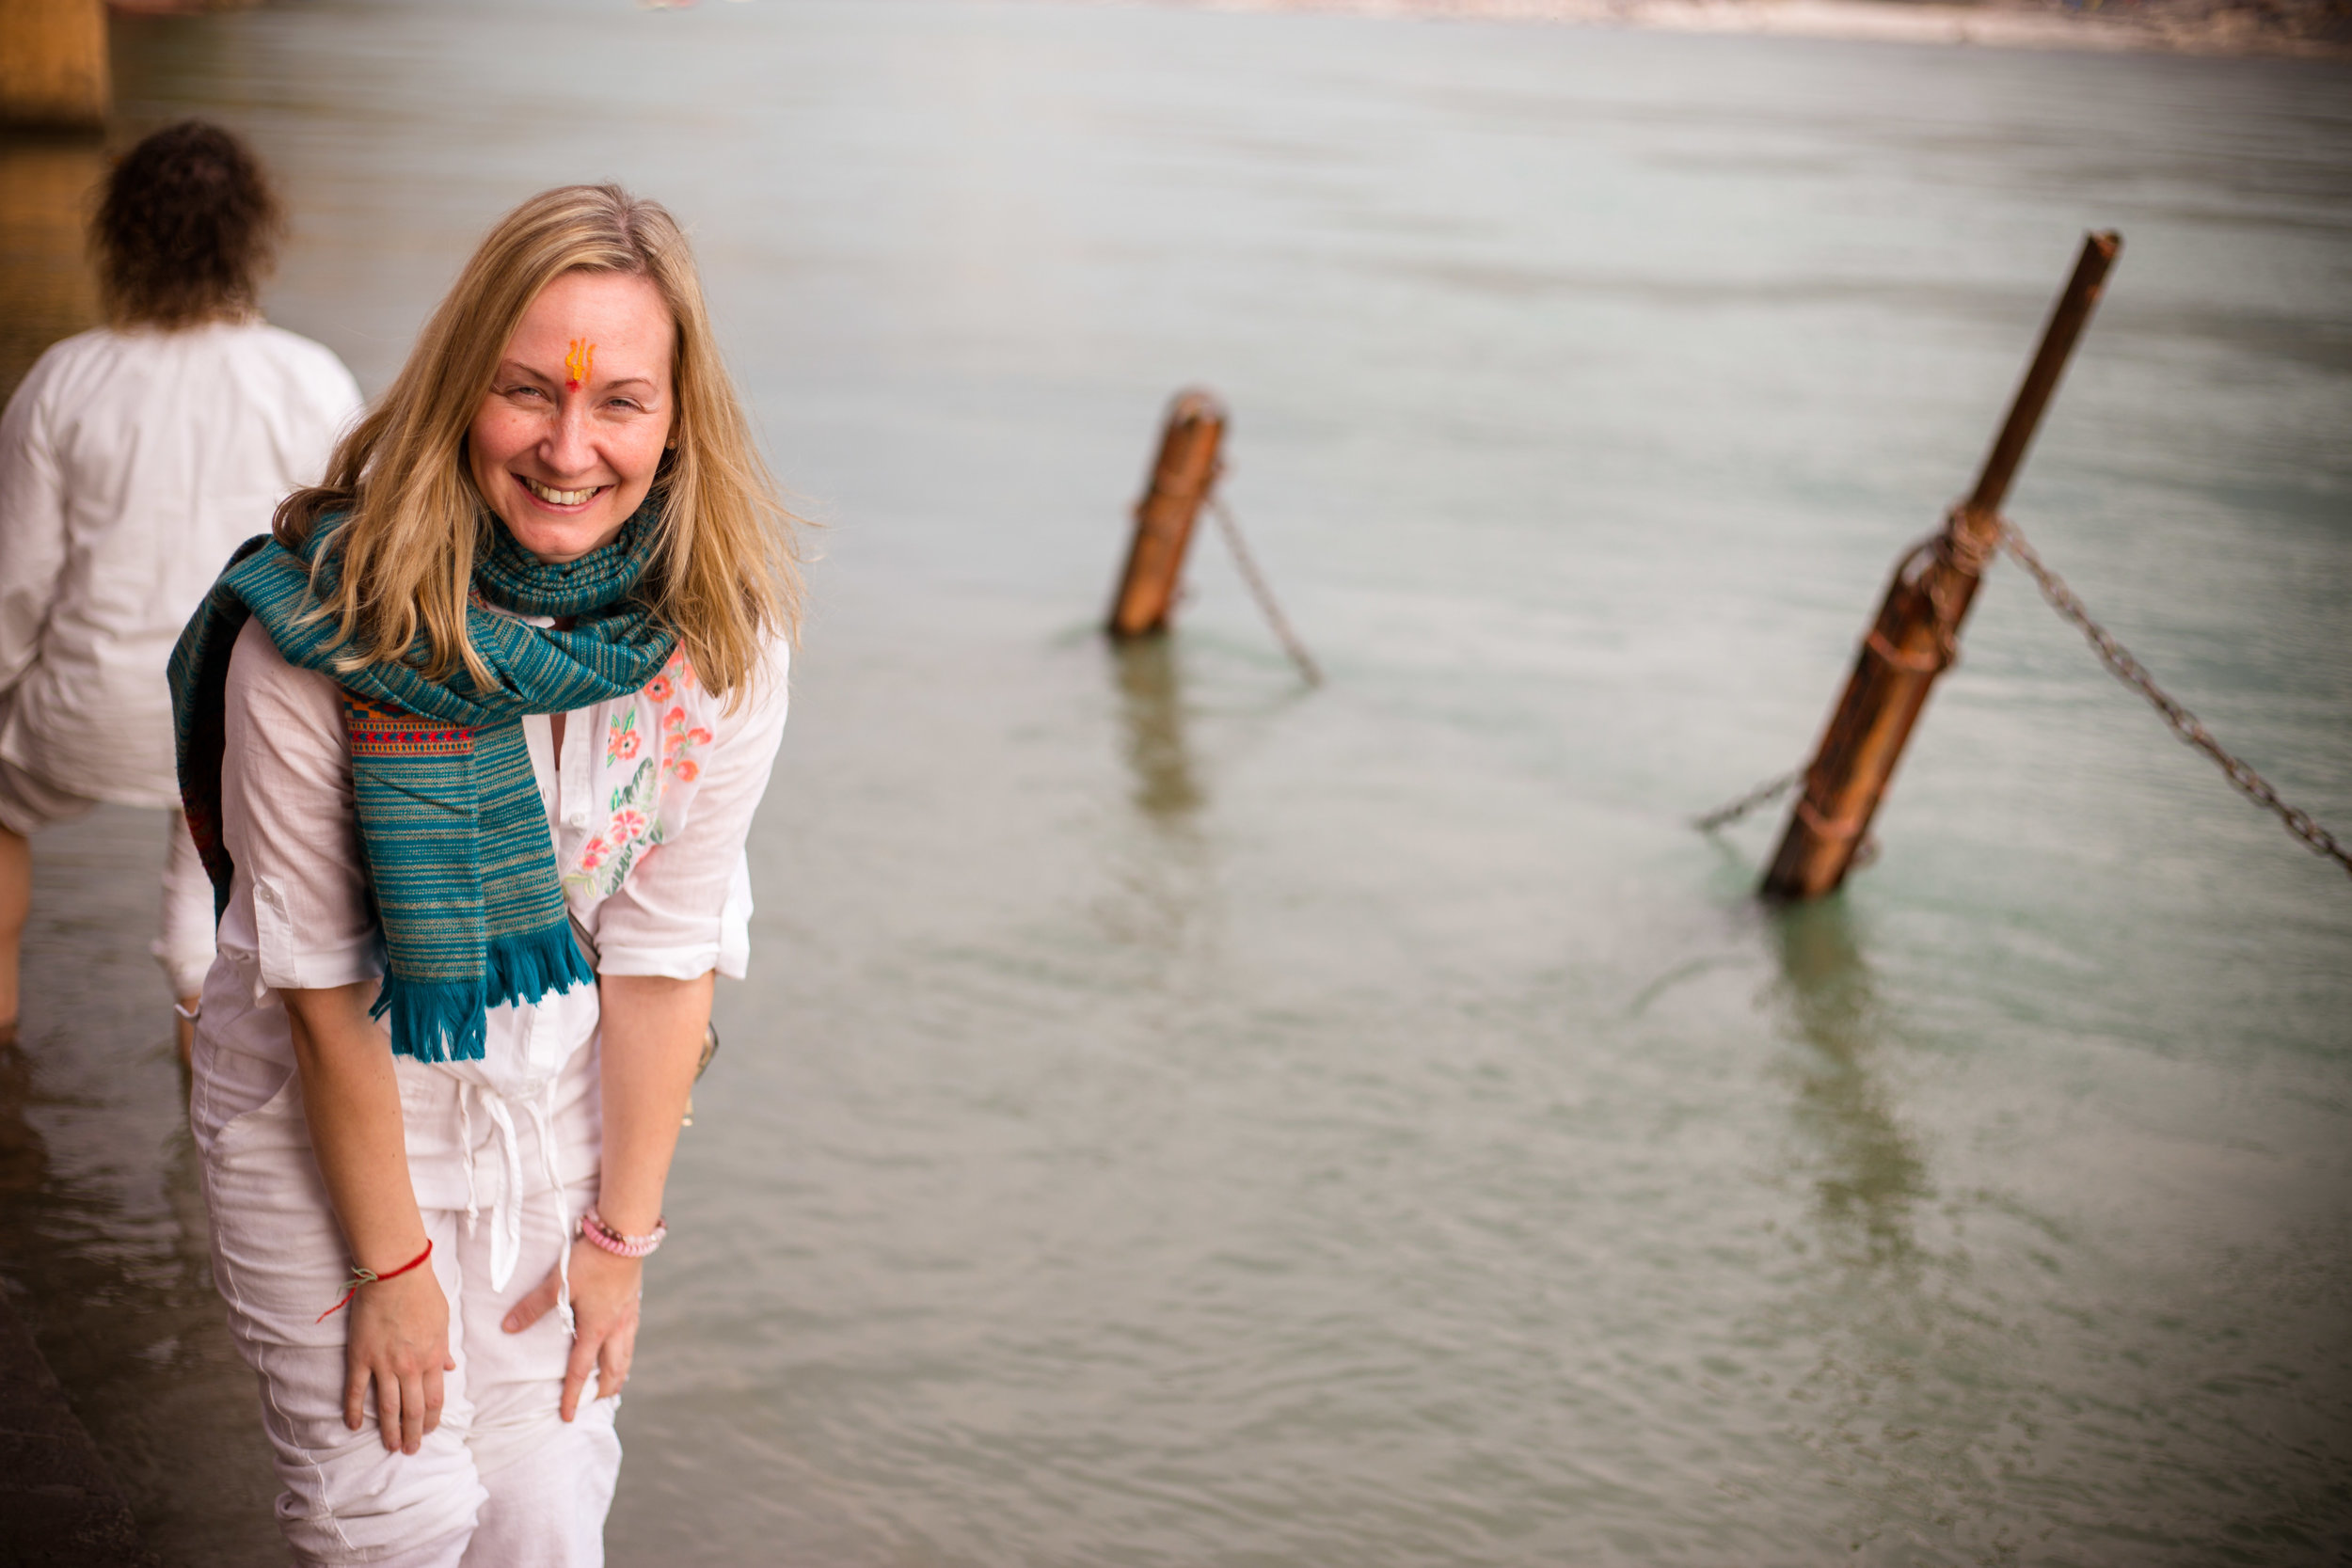 Bodhini enjoying the blessing of Divine Ganga Ma (River Ganges) on the Heart Of Living Yoga Teacher Training in Rishikesh, January 2019. Photo credit: Akasha Alix @ Lumiere photography